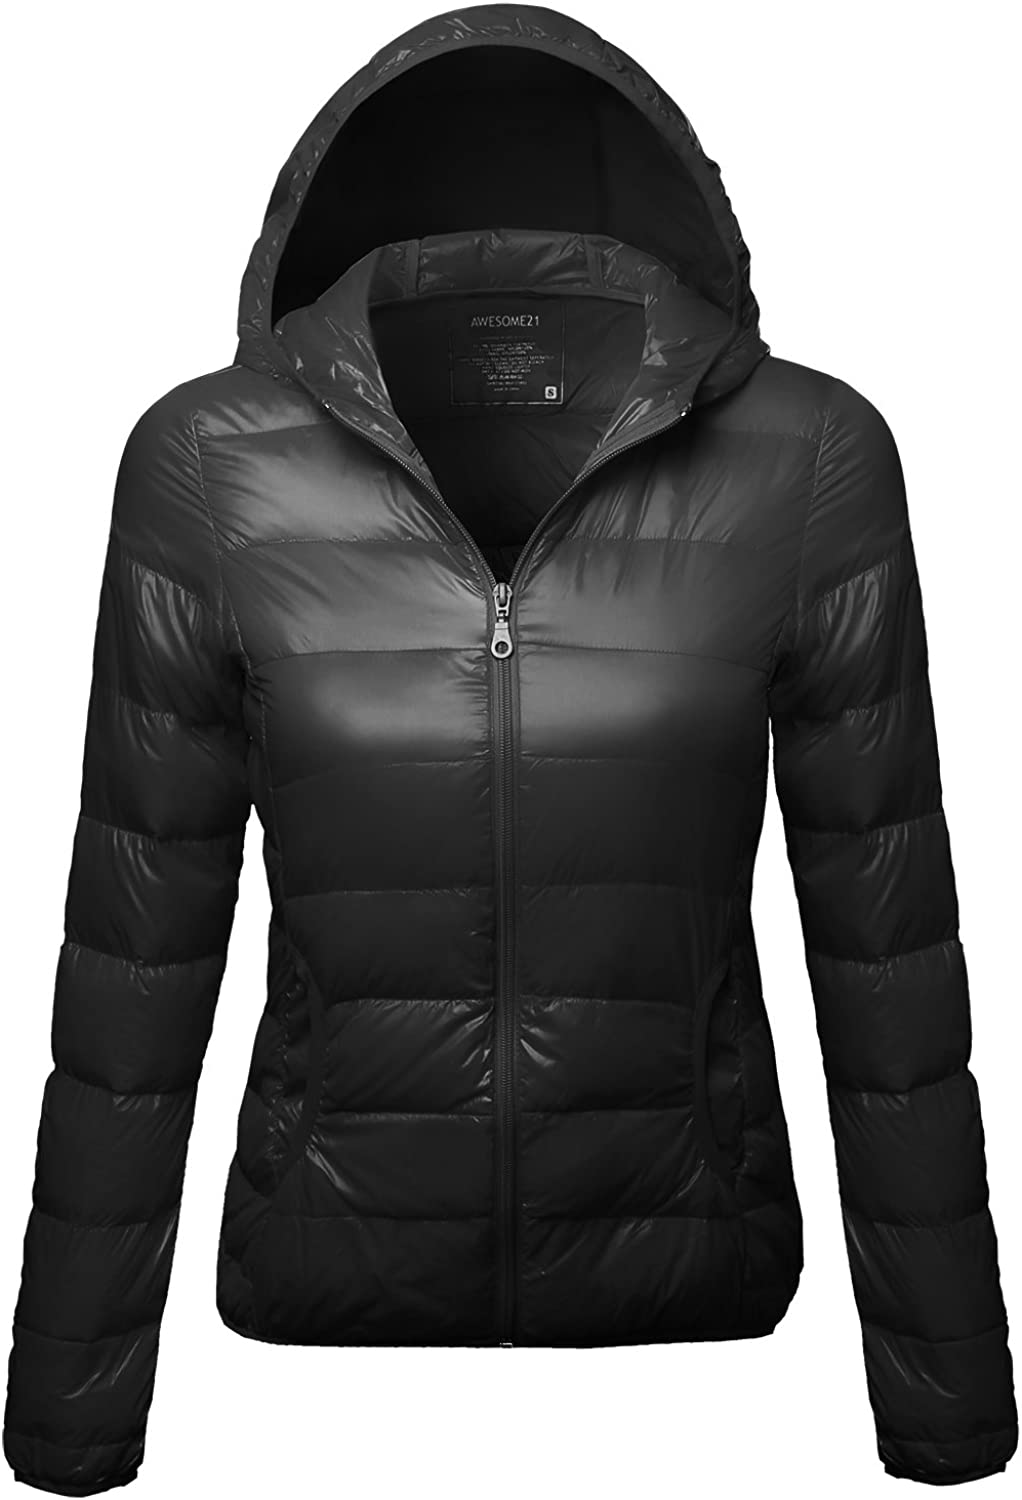 Awesome21 Women's The Lightweight Puffer Hood Jacket